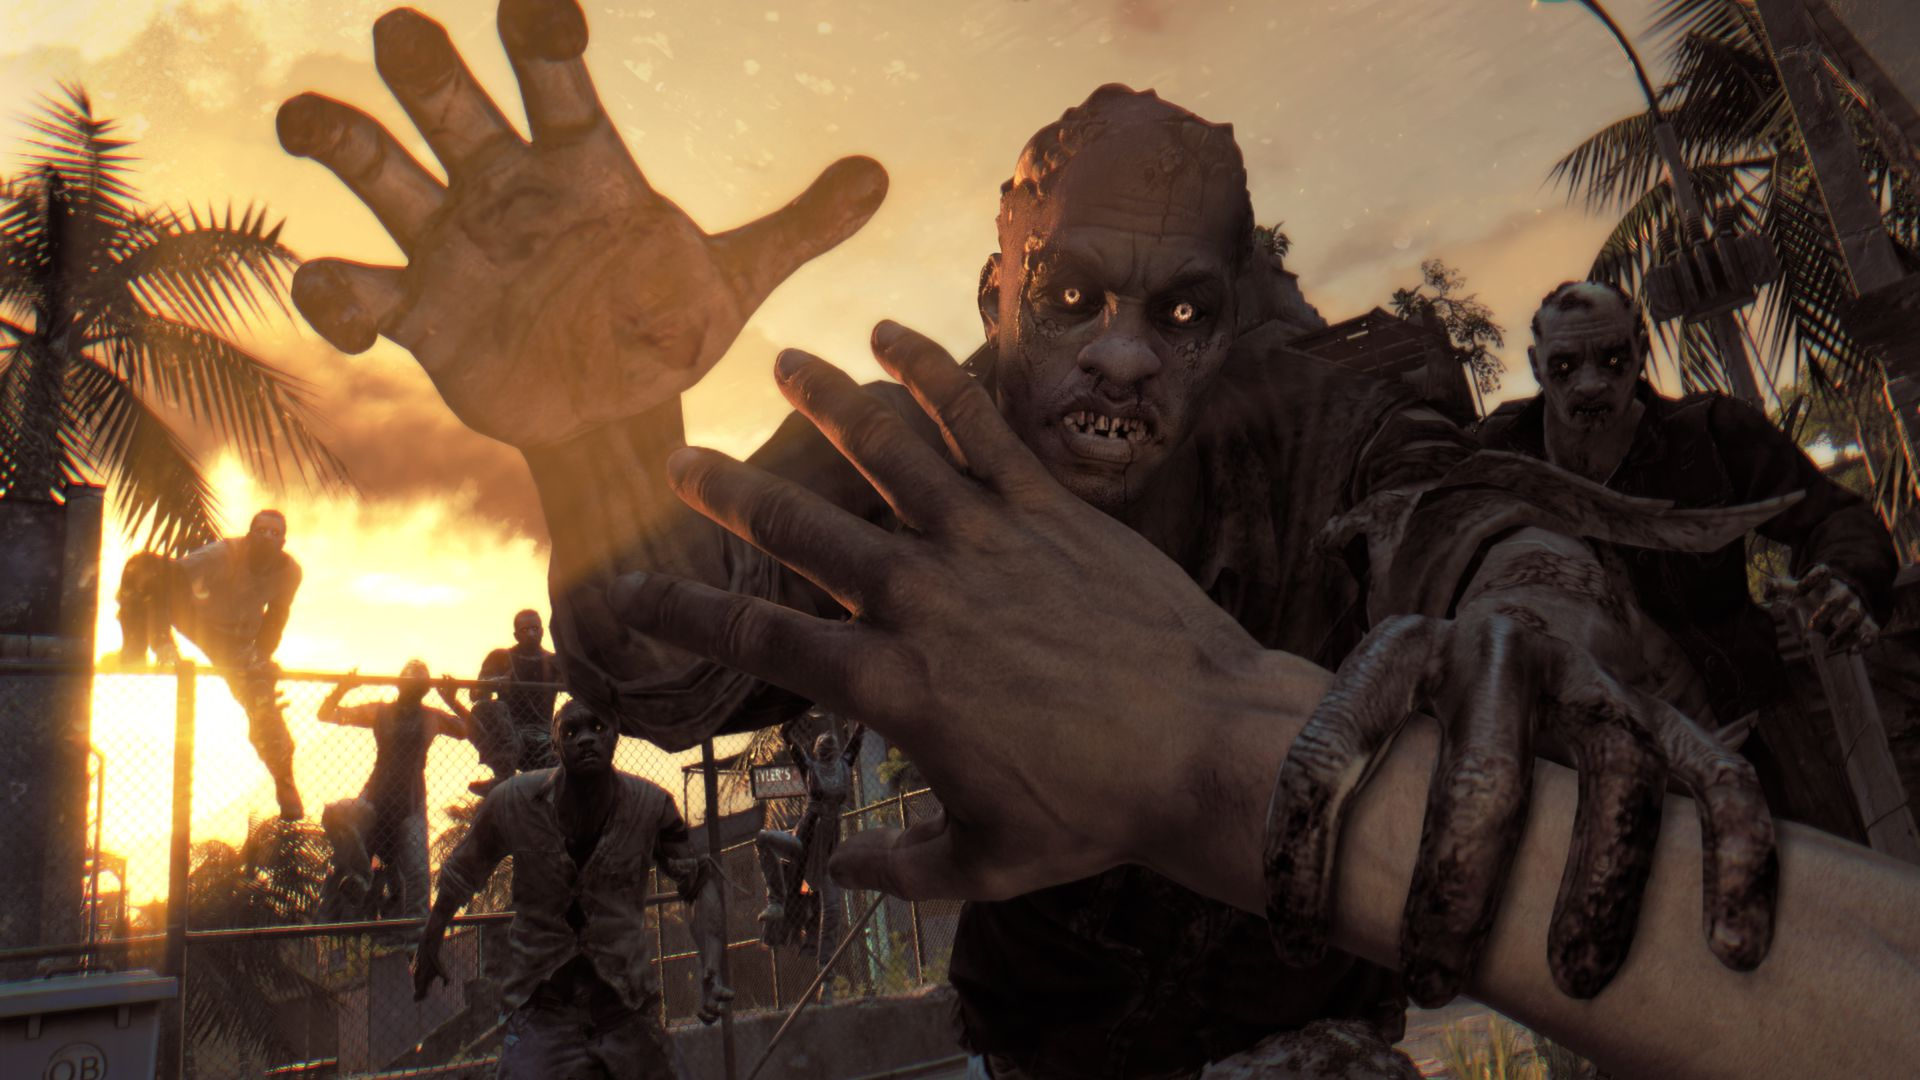 Dying Light to free DLC helpings in next months